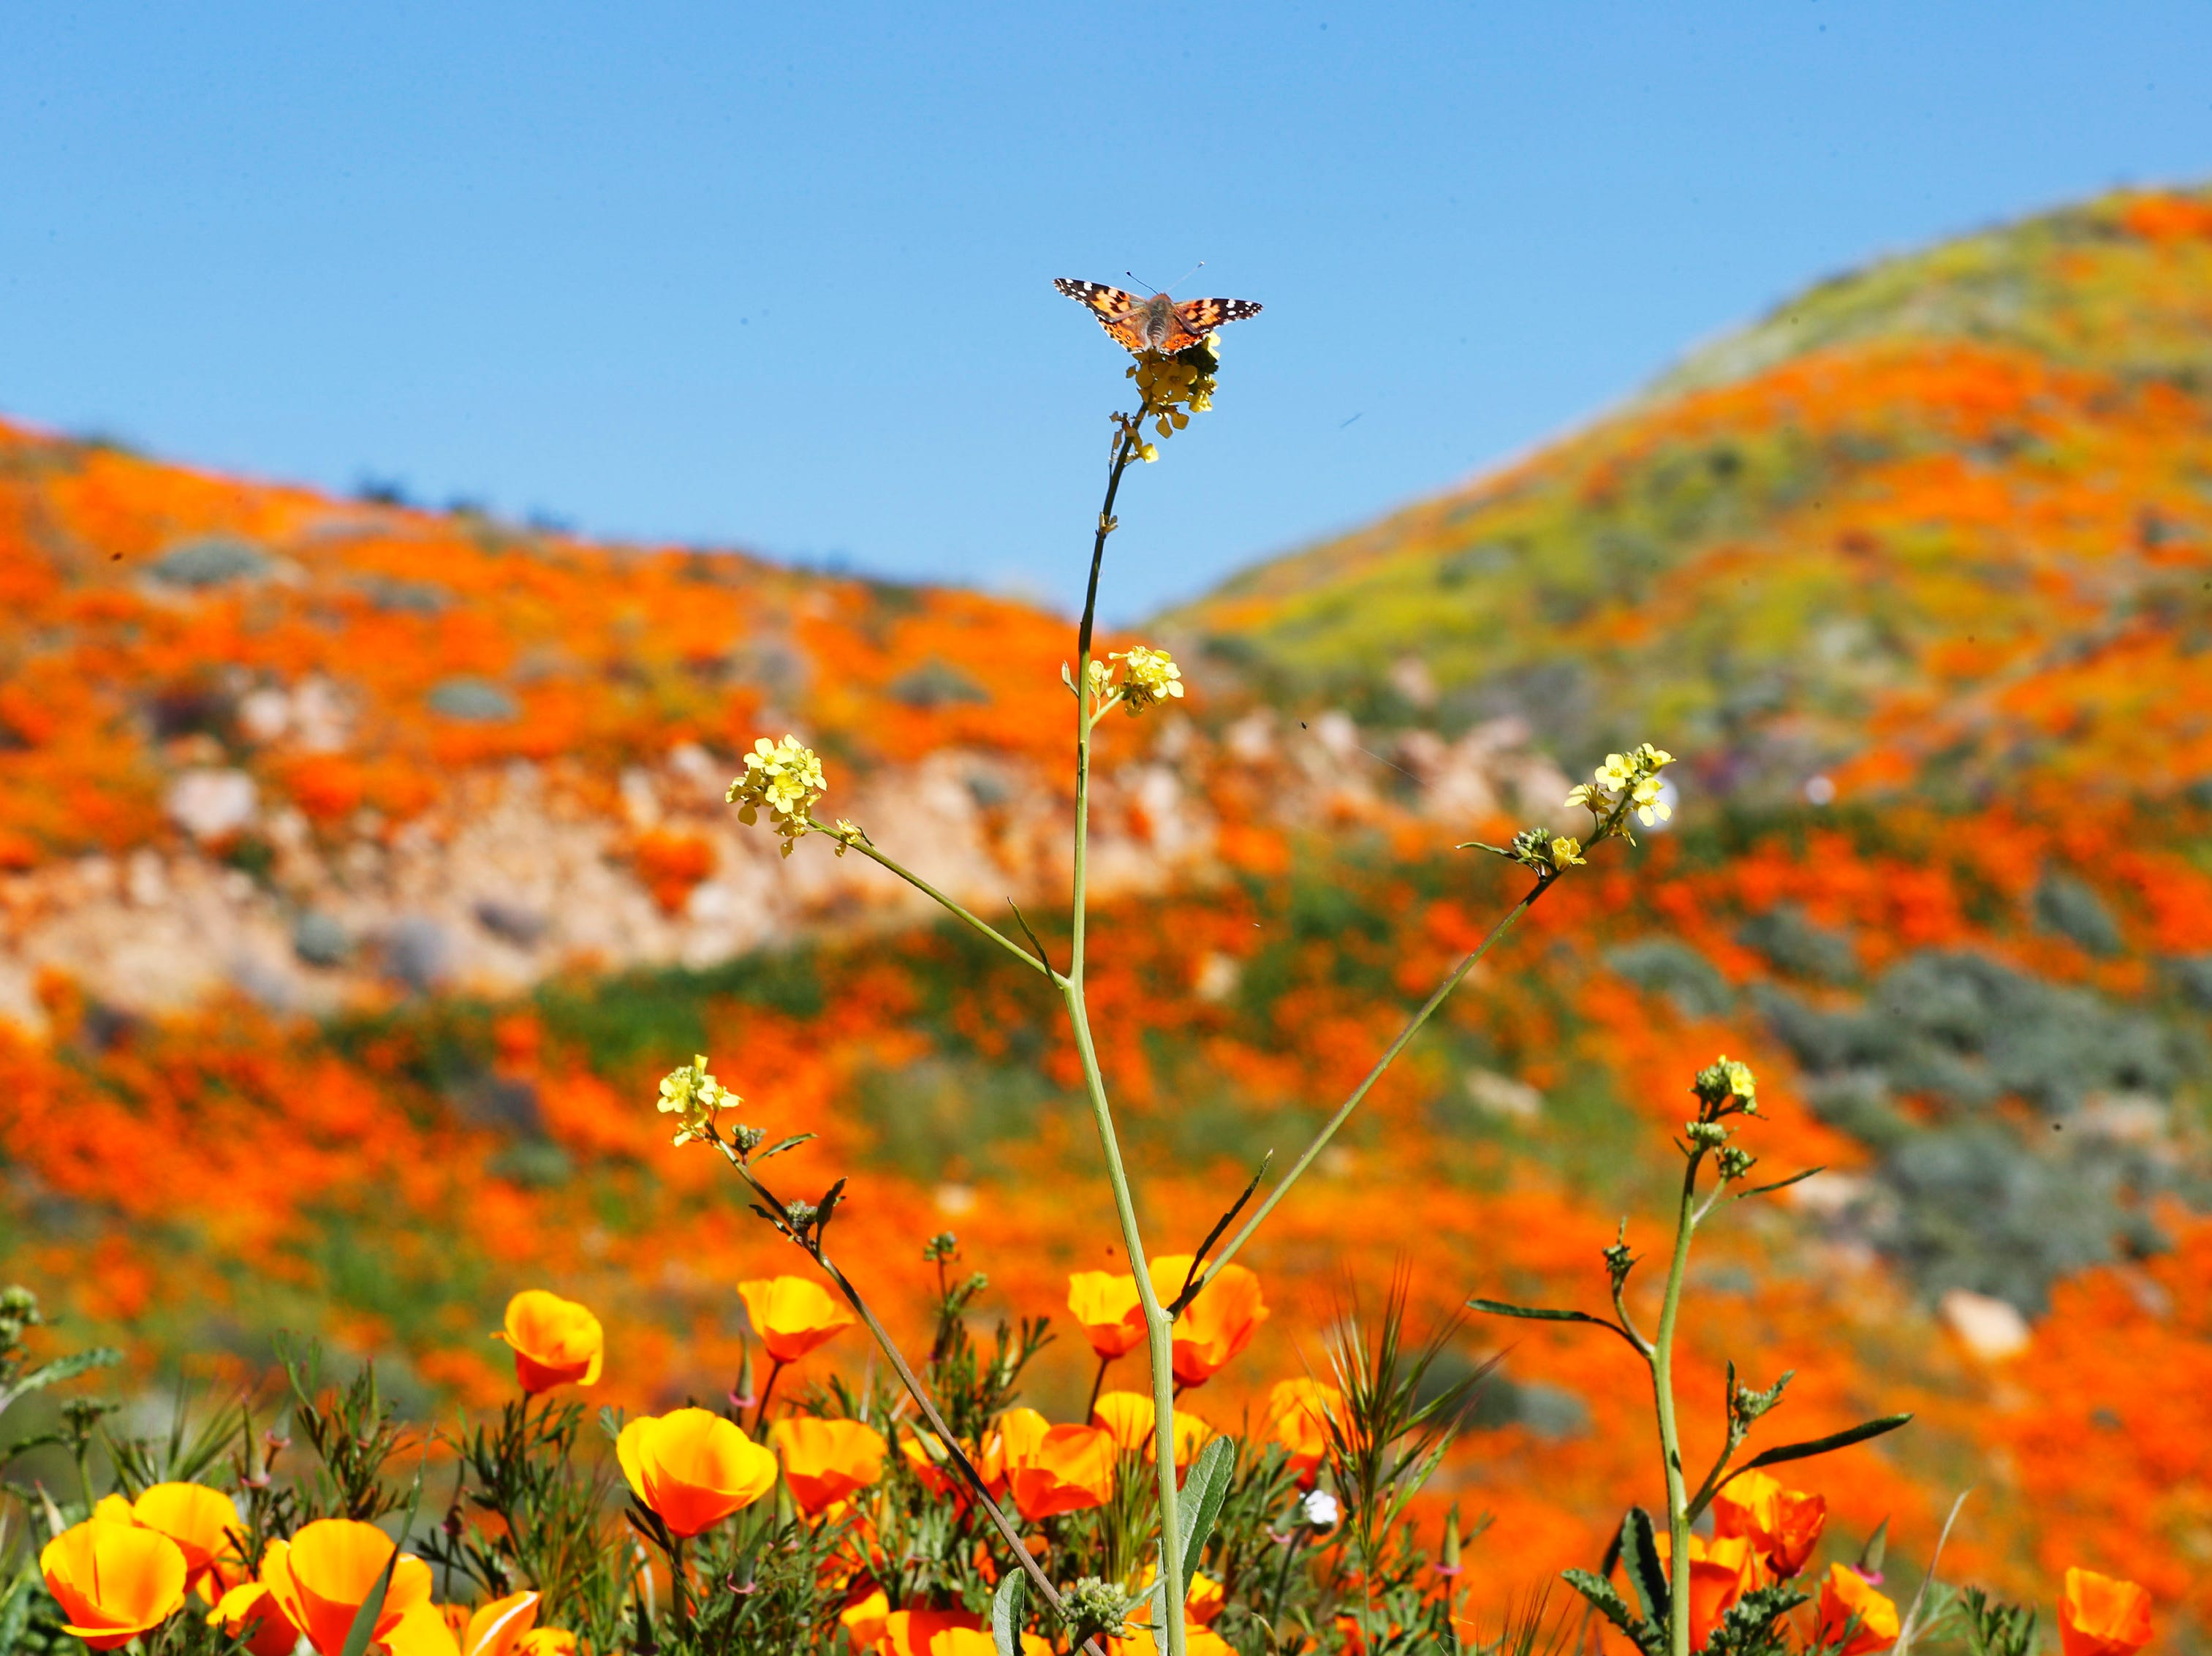 Poppies and wildflowers color the hillsides at Walker Canyon in Lake Elsinore, Calif. Sunday March 17, 2019. After massive crowds flooded the small community to see the flowers, city officials have shut down Walker Canyon to the public. No shuttles or visitors will be allowed.